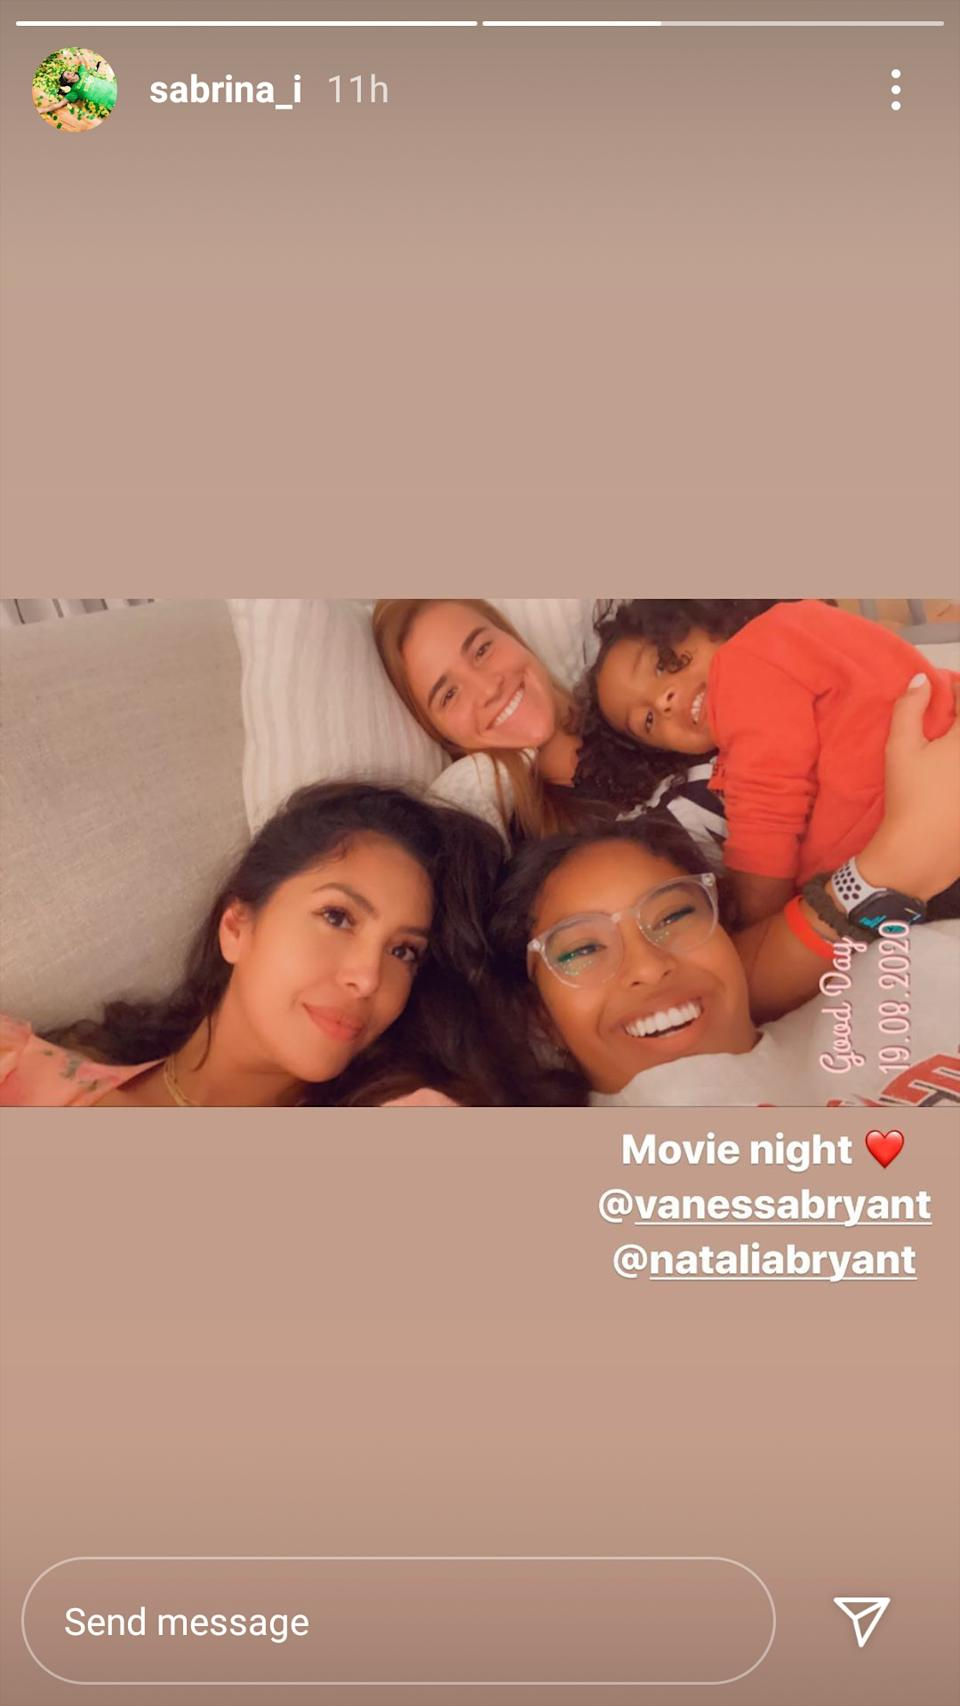 Sabrina Ionescu spent a movie night with the Bryant family. (Screenshot/Instagram)